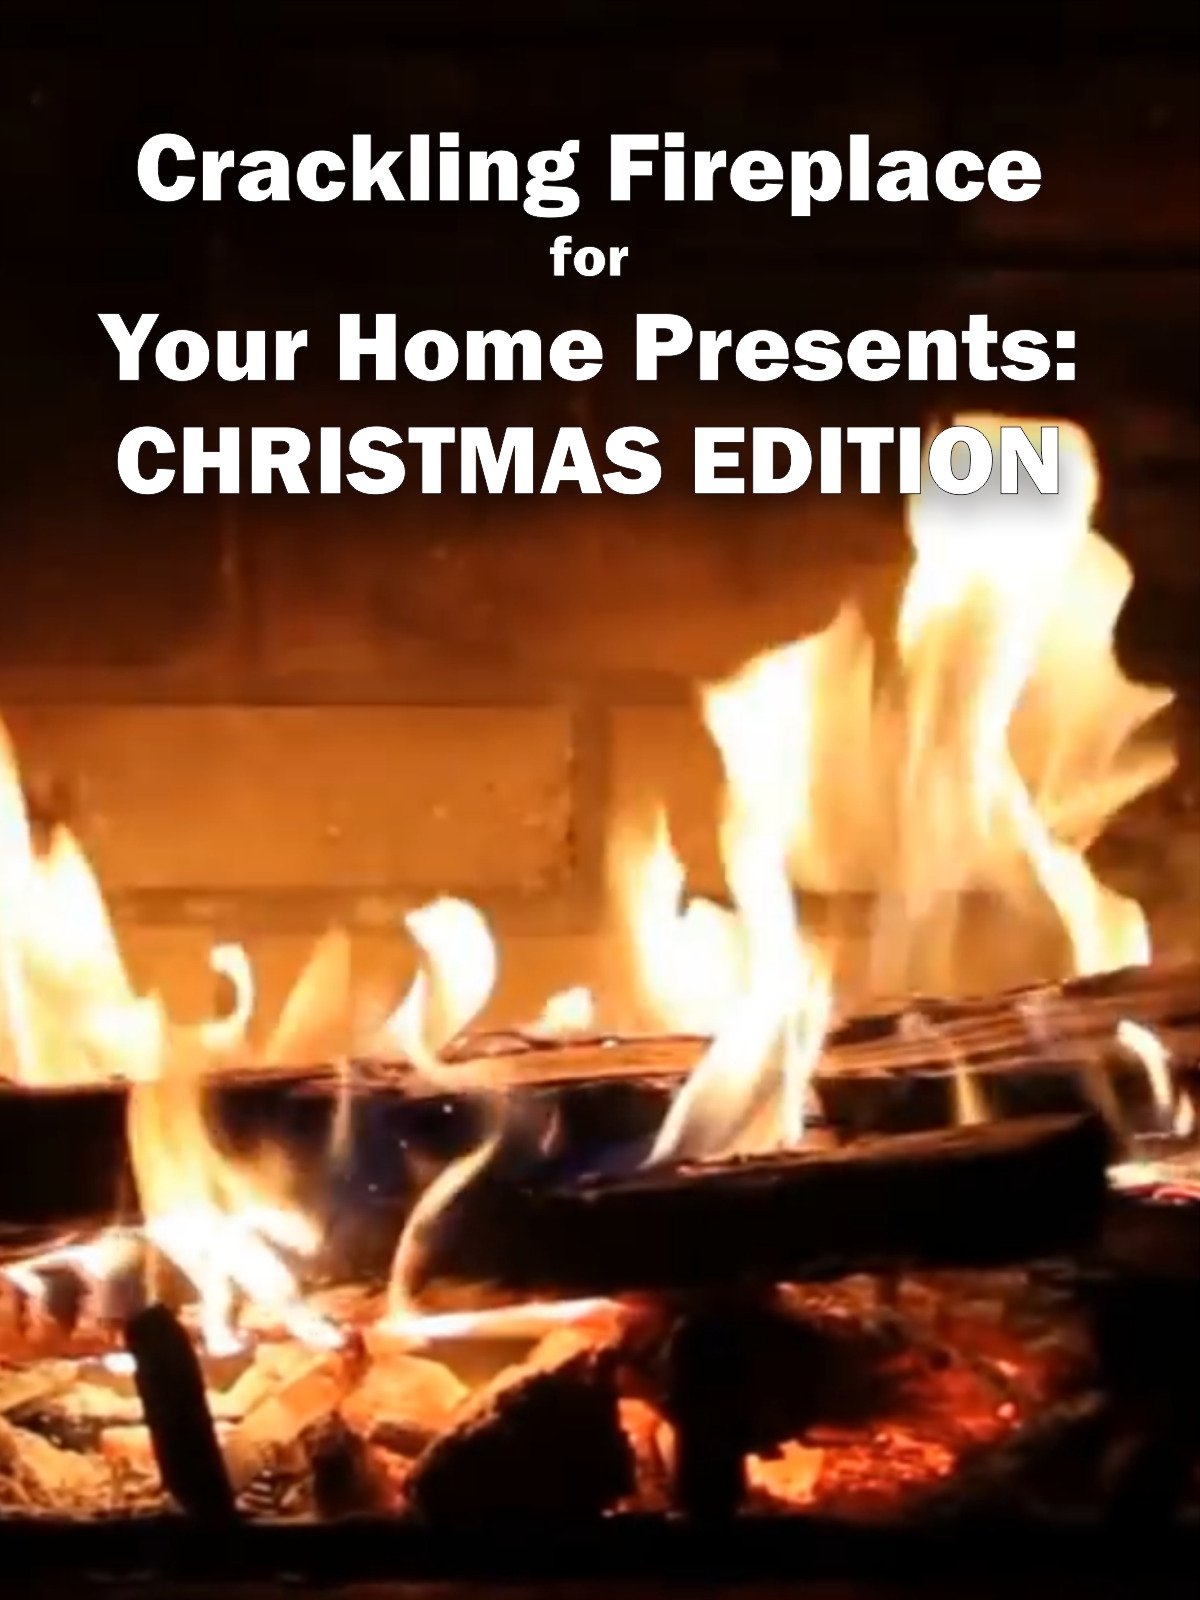 Crackling Fireplace for Your Home Presents: Christmas Edition